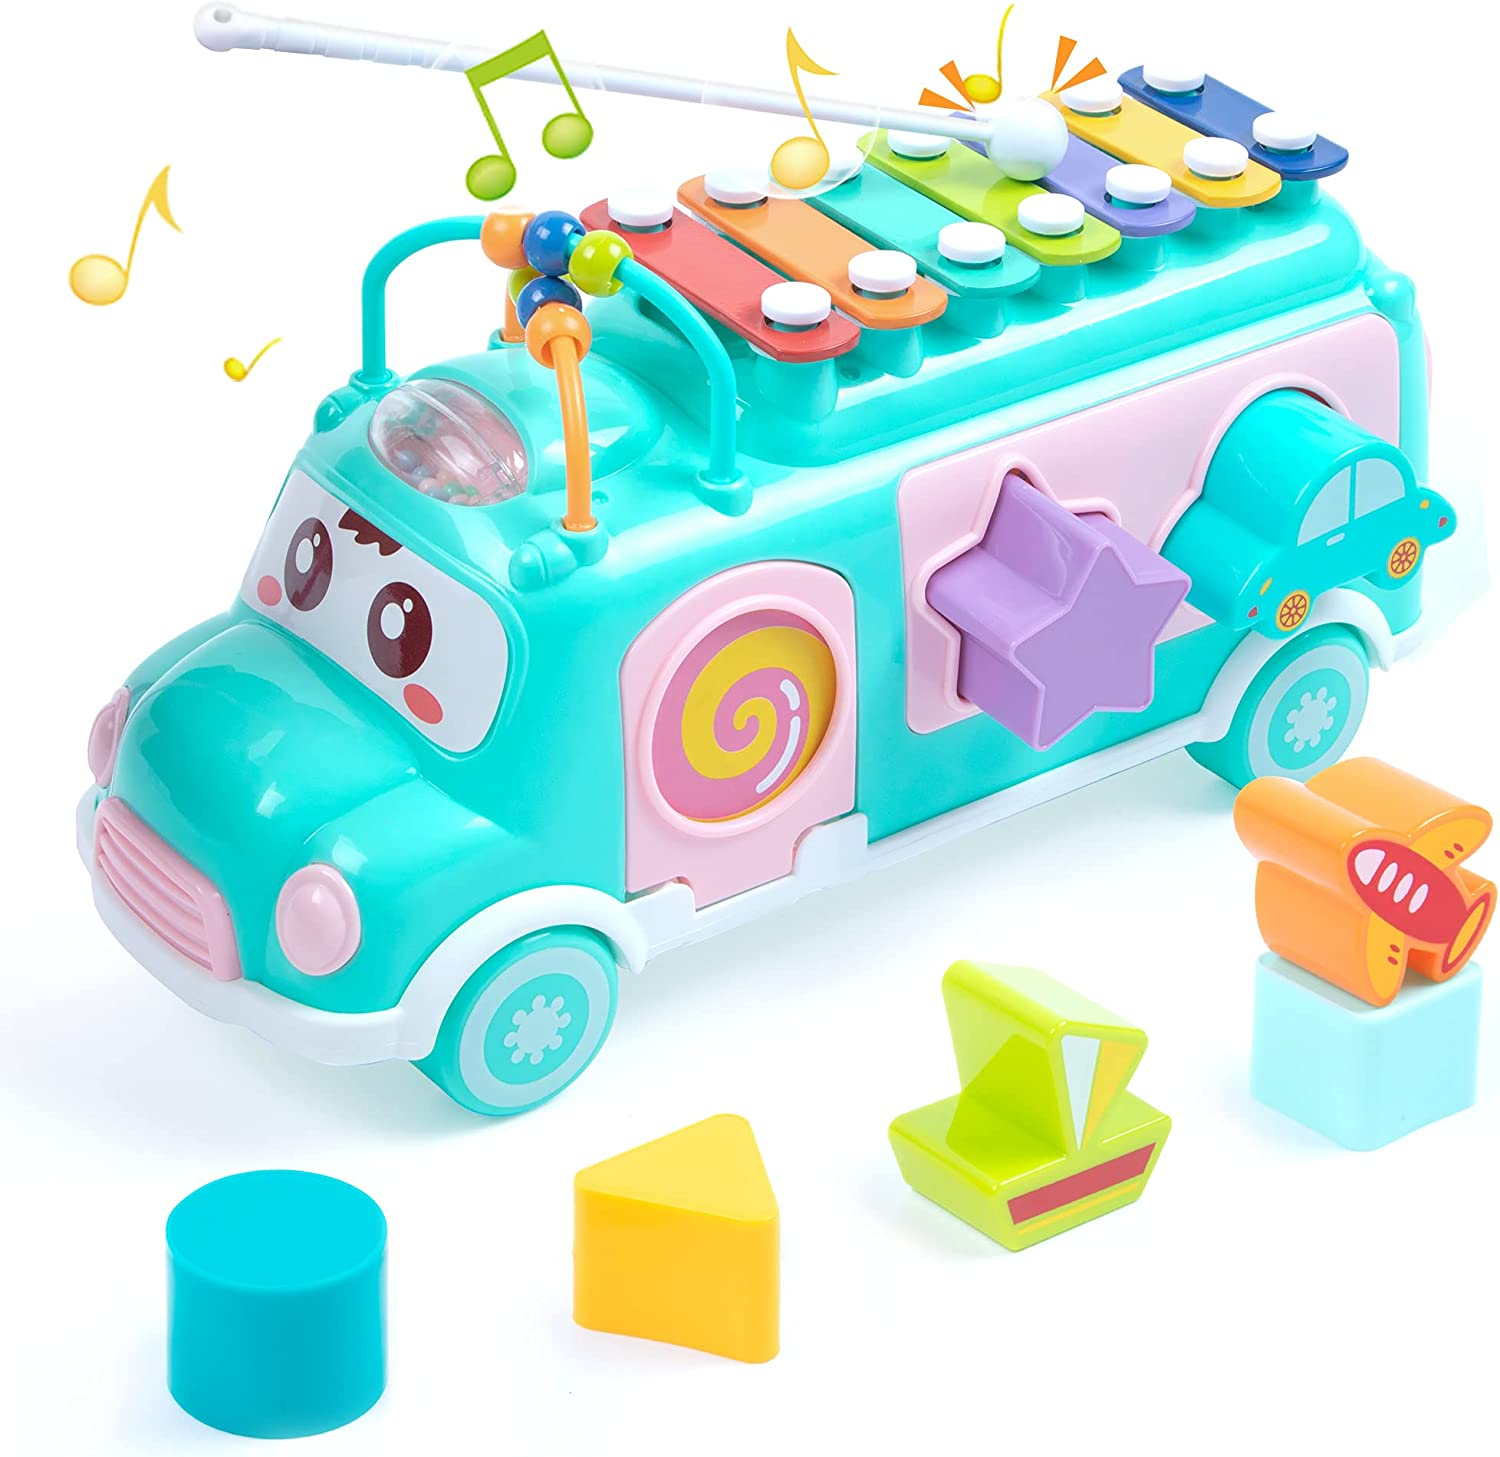 UNIH School Bus Toy, Push Infant Toy Xylophone Percussion with Safe Mallets, Learning Educational Musical Toys for Baby, Baby Toys for 1-3 Boys Girls Early Educational Toys